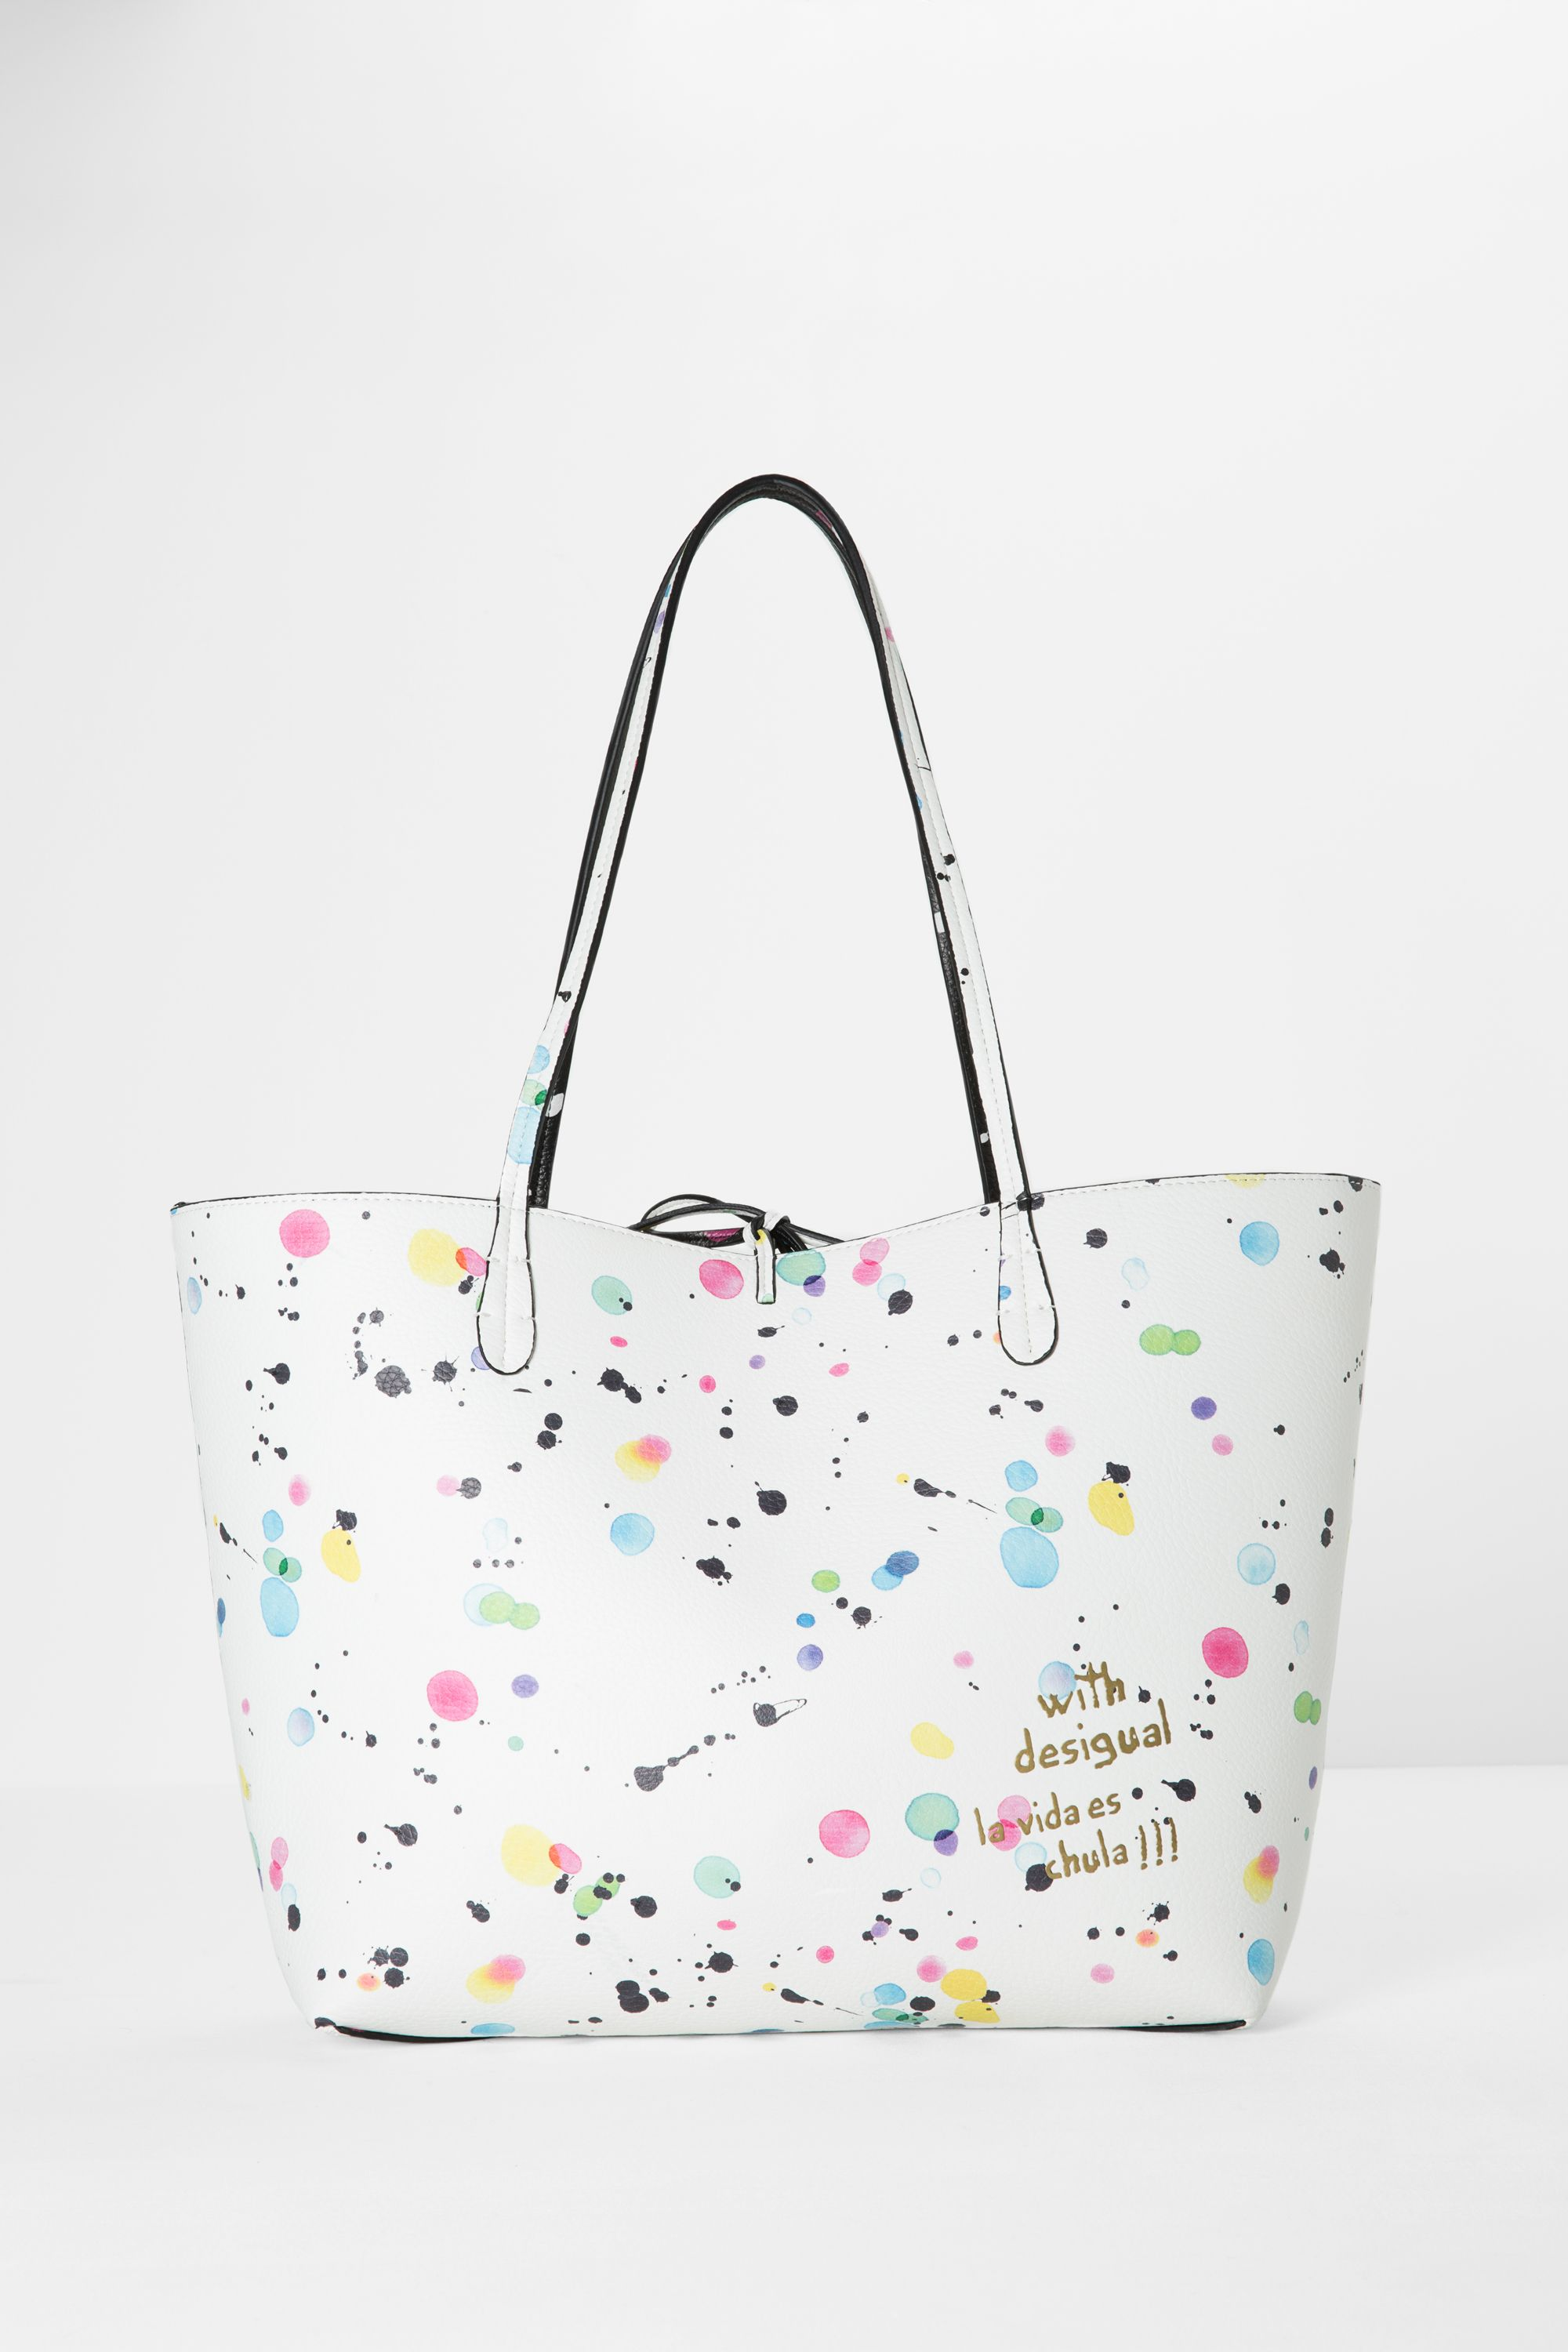 VIDA Statement Bag - Endless Tulips by VIDA